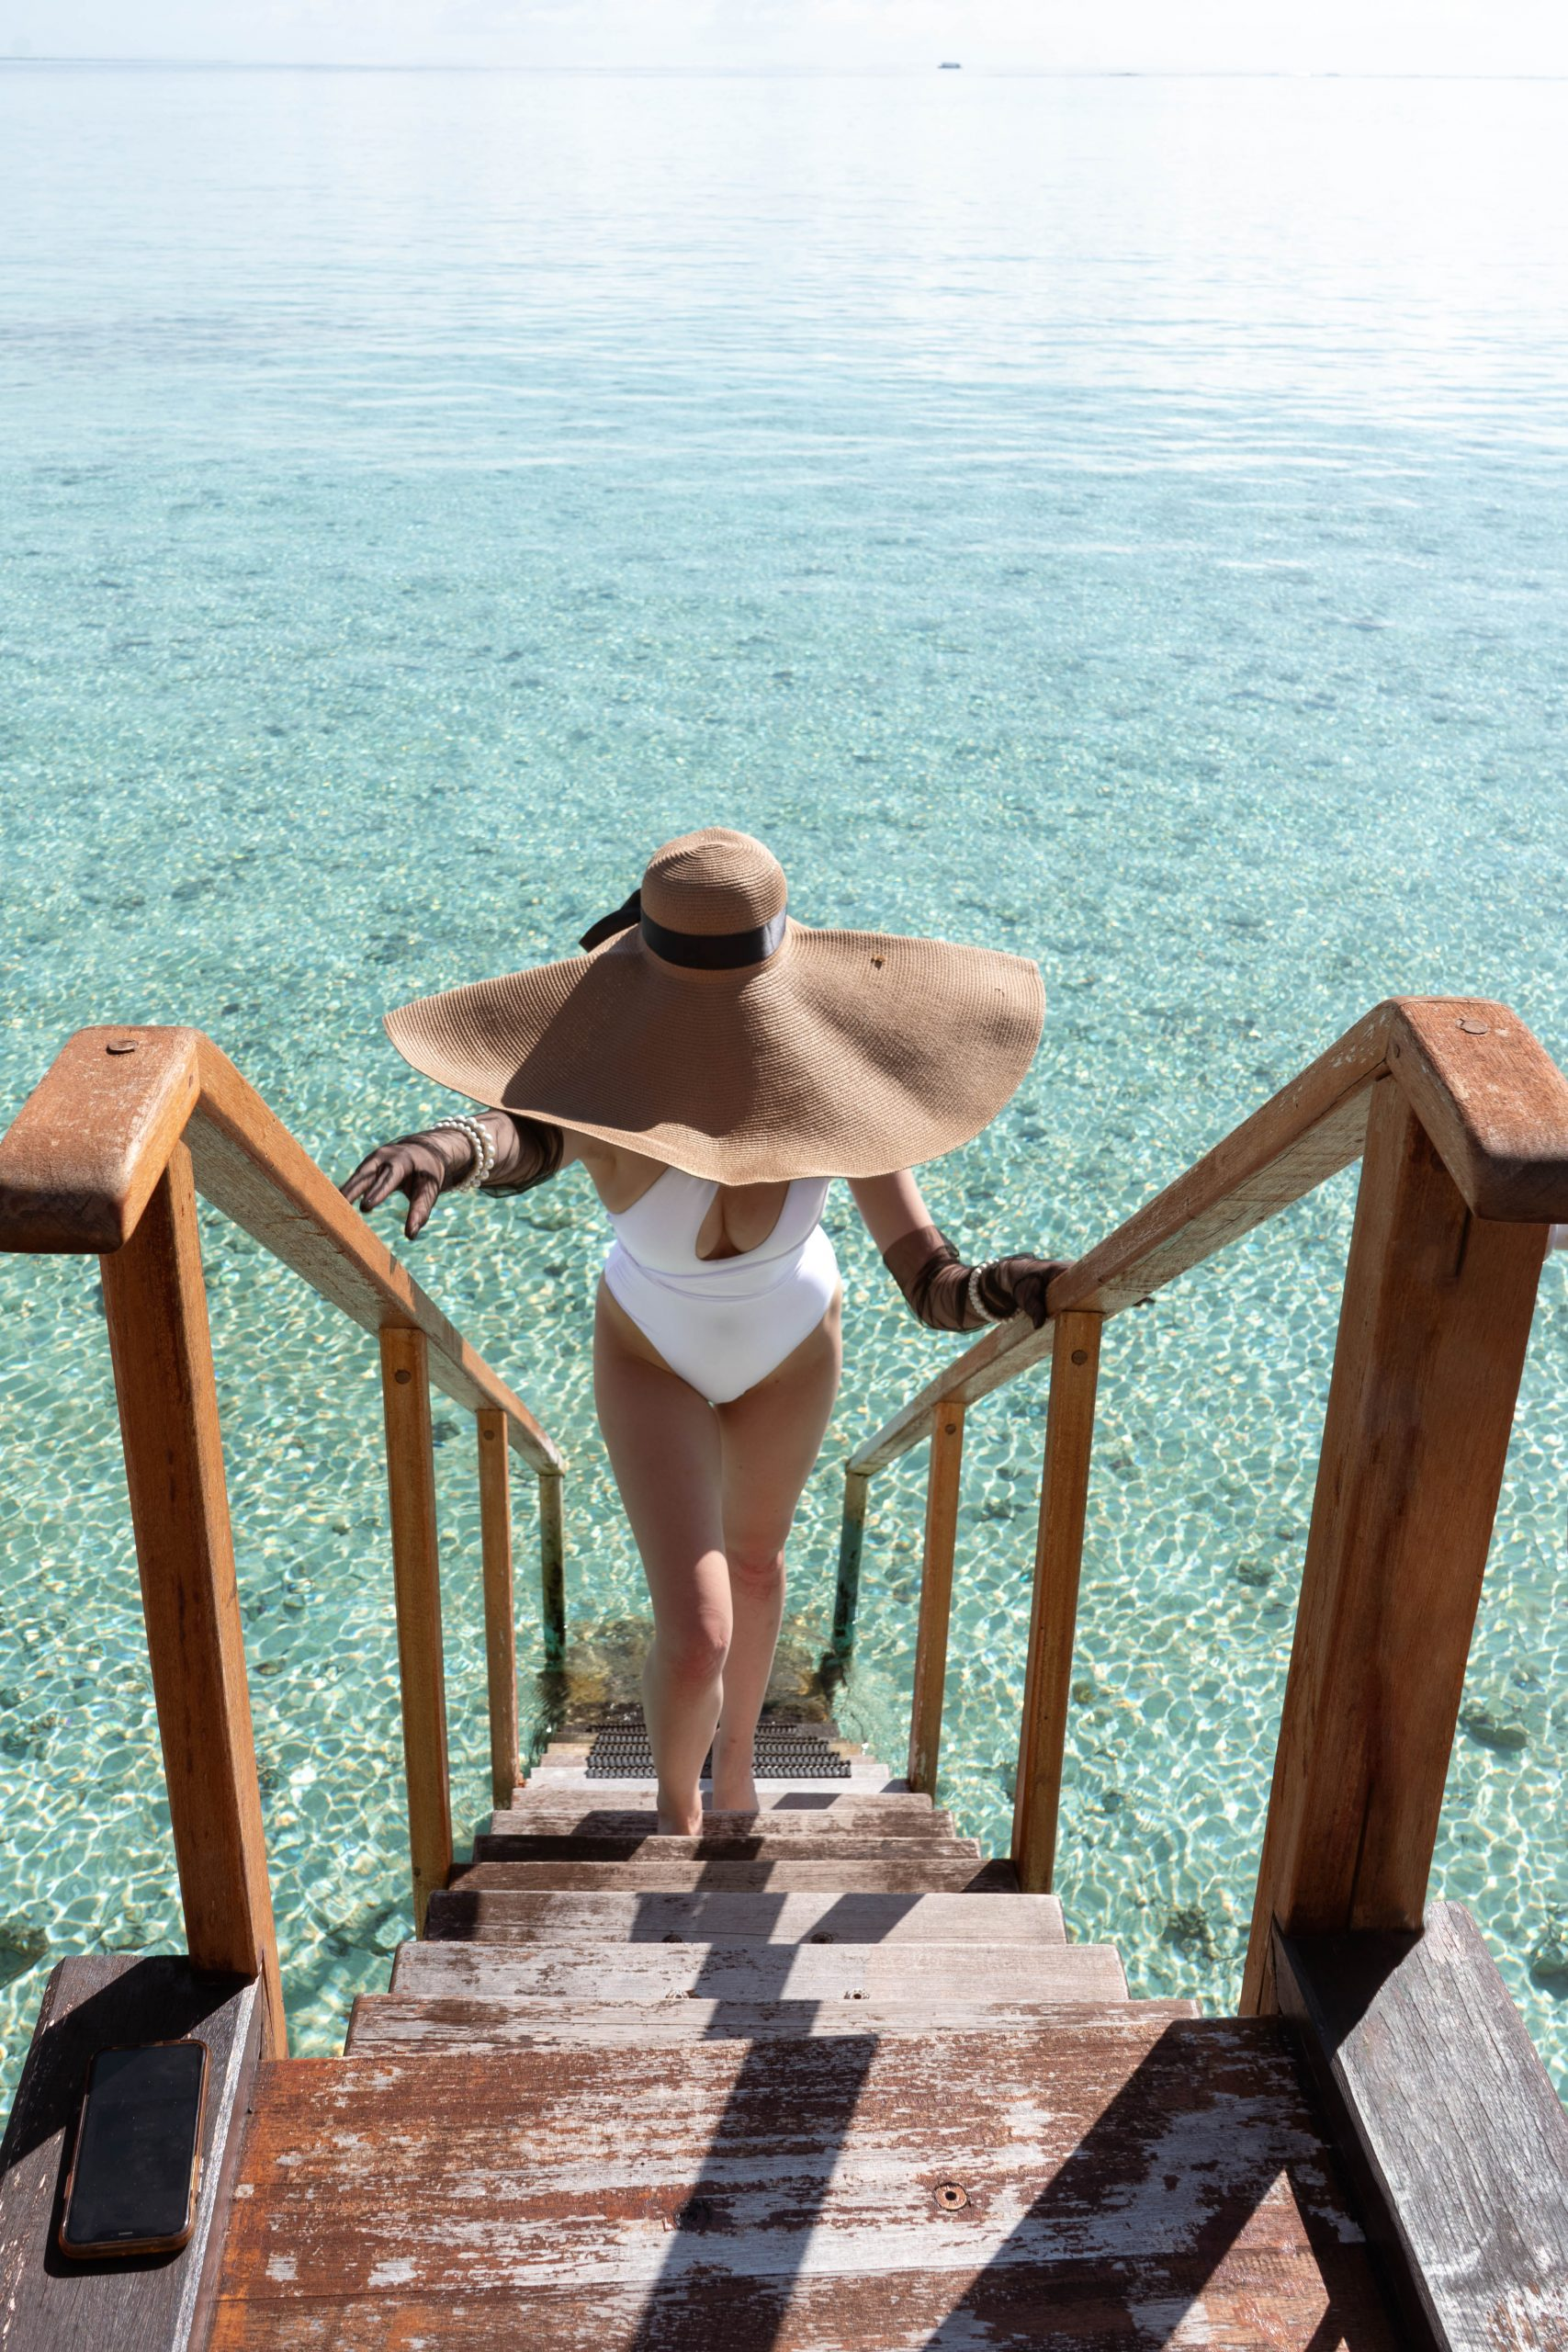 oversize floppy straw sun hat one shoulder white one piece swimsuit black tulle gloves pearl bracelets woman walking up staircase indian ocean clear turquoise blue water maldives